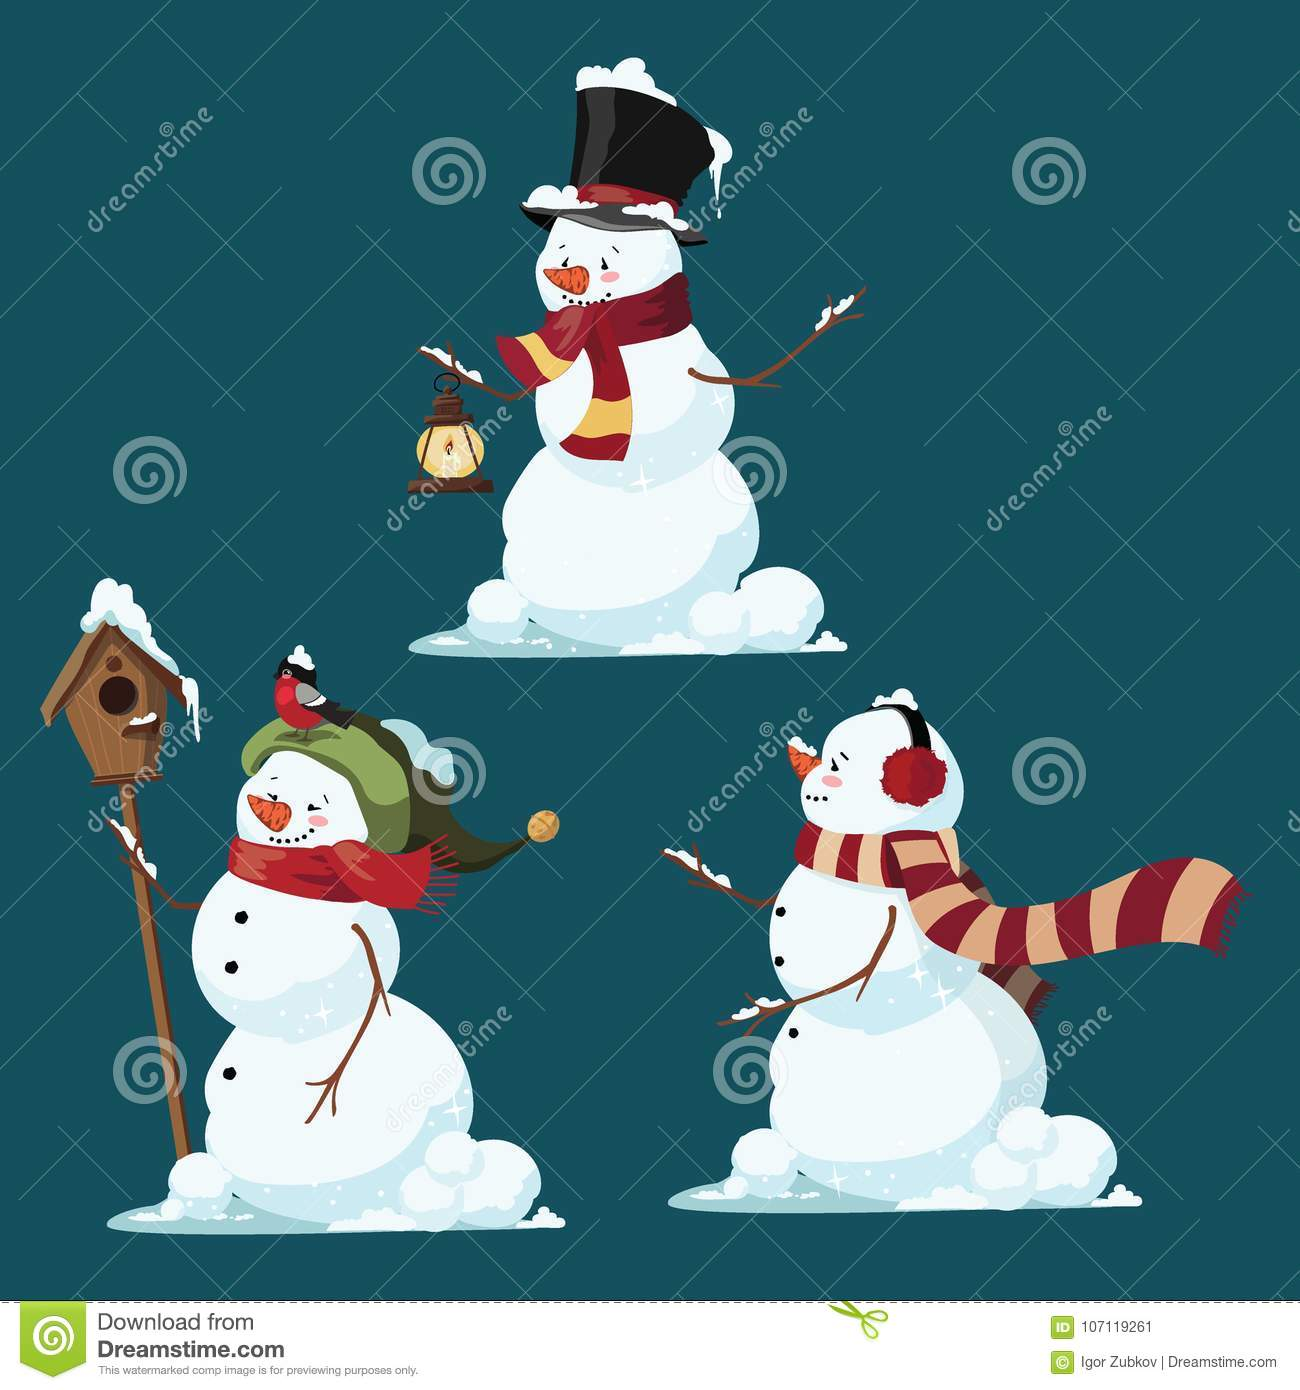 Set of Christmas snowmen. Collection of funny cartoon